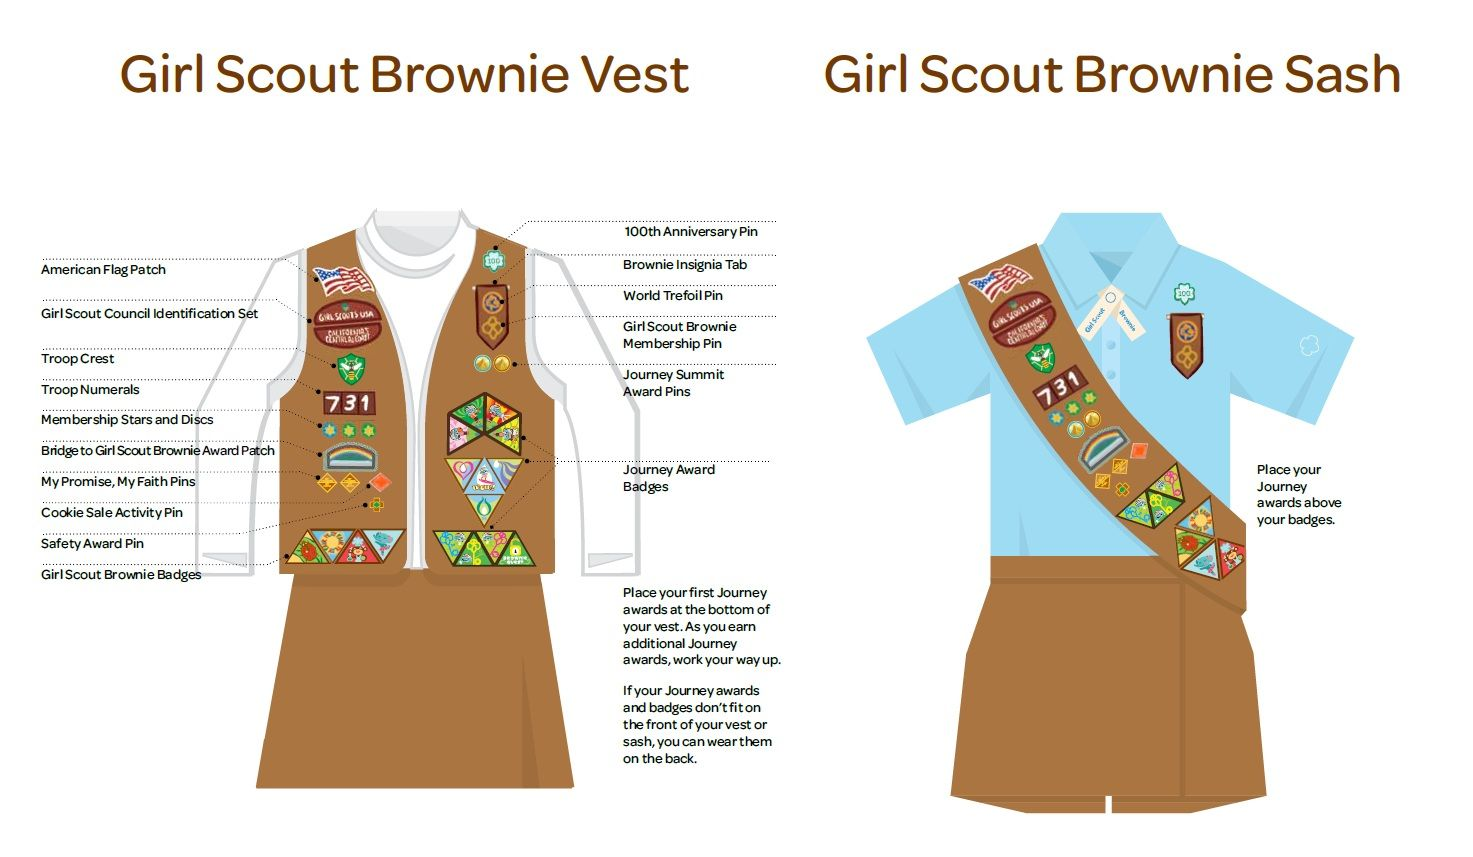 Girl Scout Brownie Vest and Sash Insignia Placement | Girl Scout ...